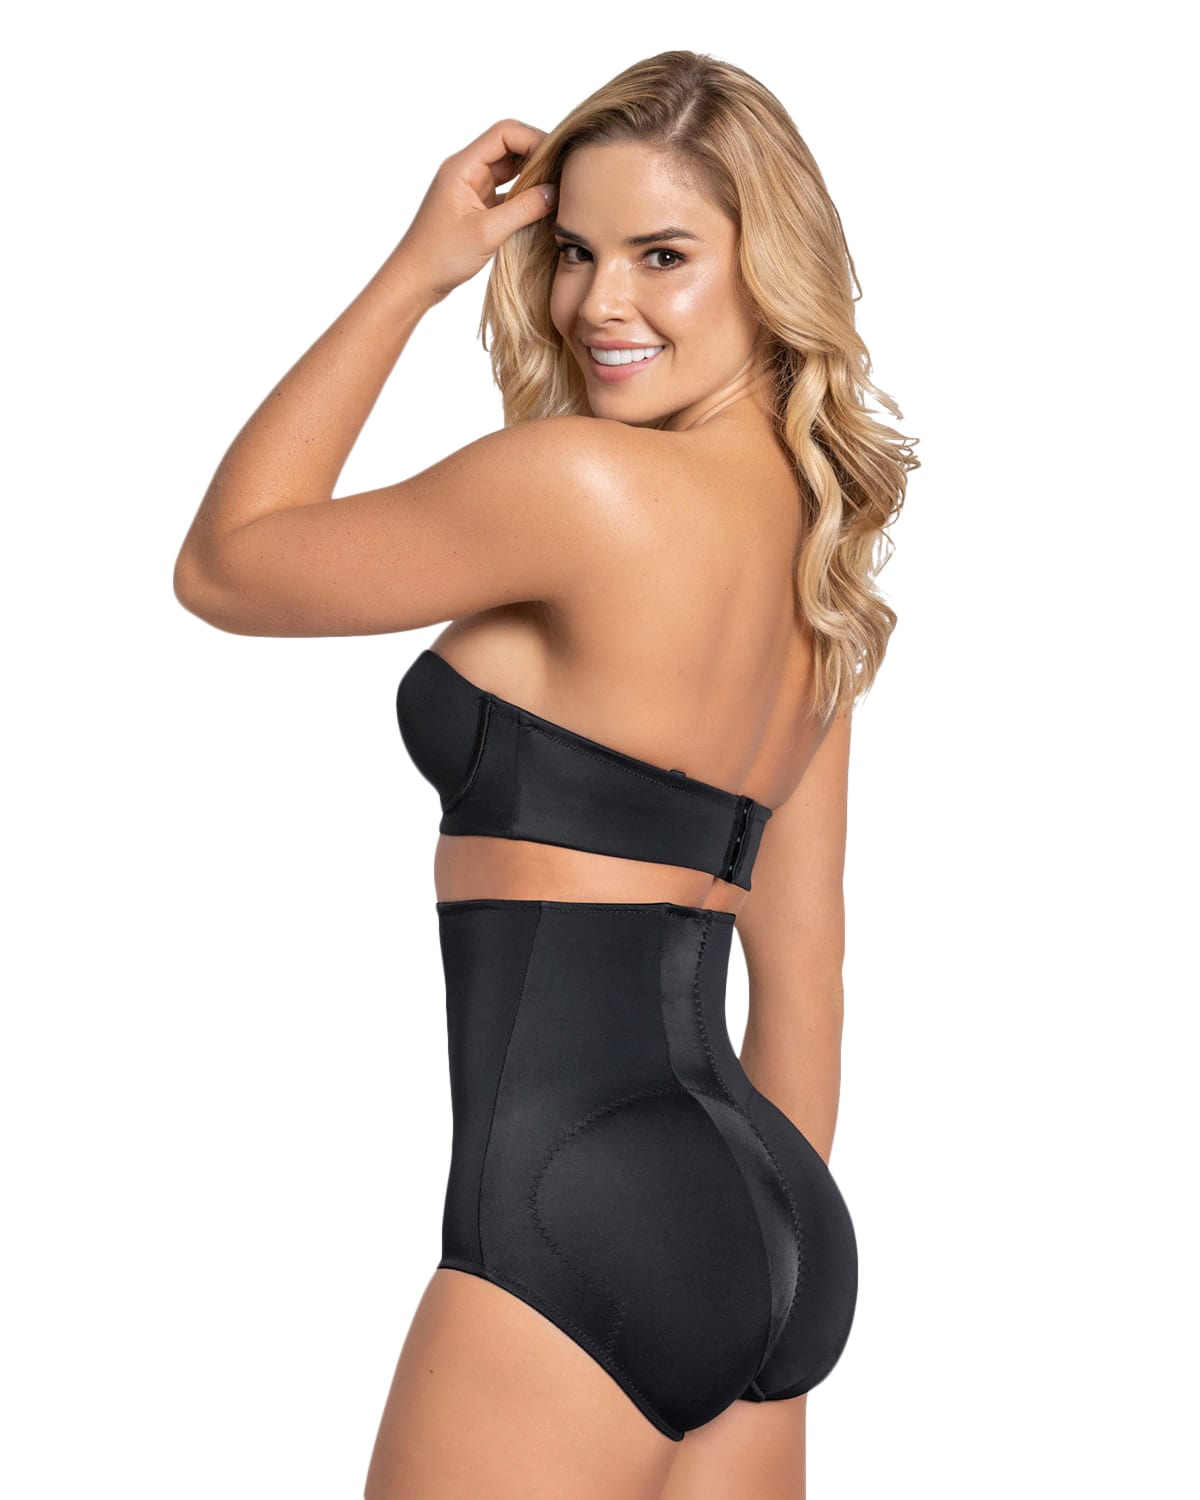 Extra High-Waisted Classic Butt Lifter Shaper Panty